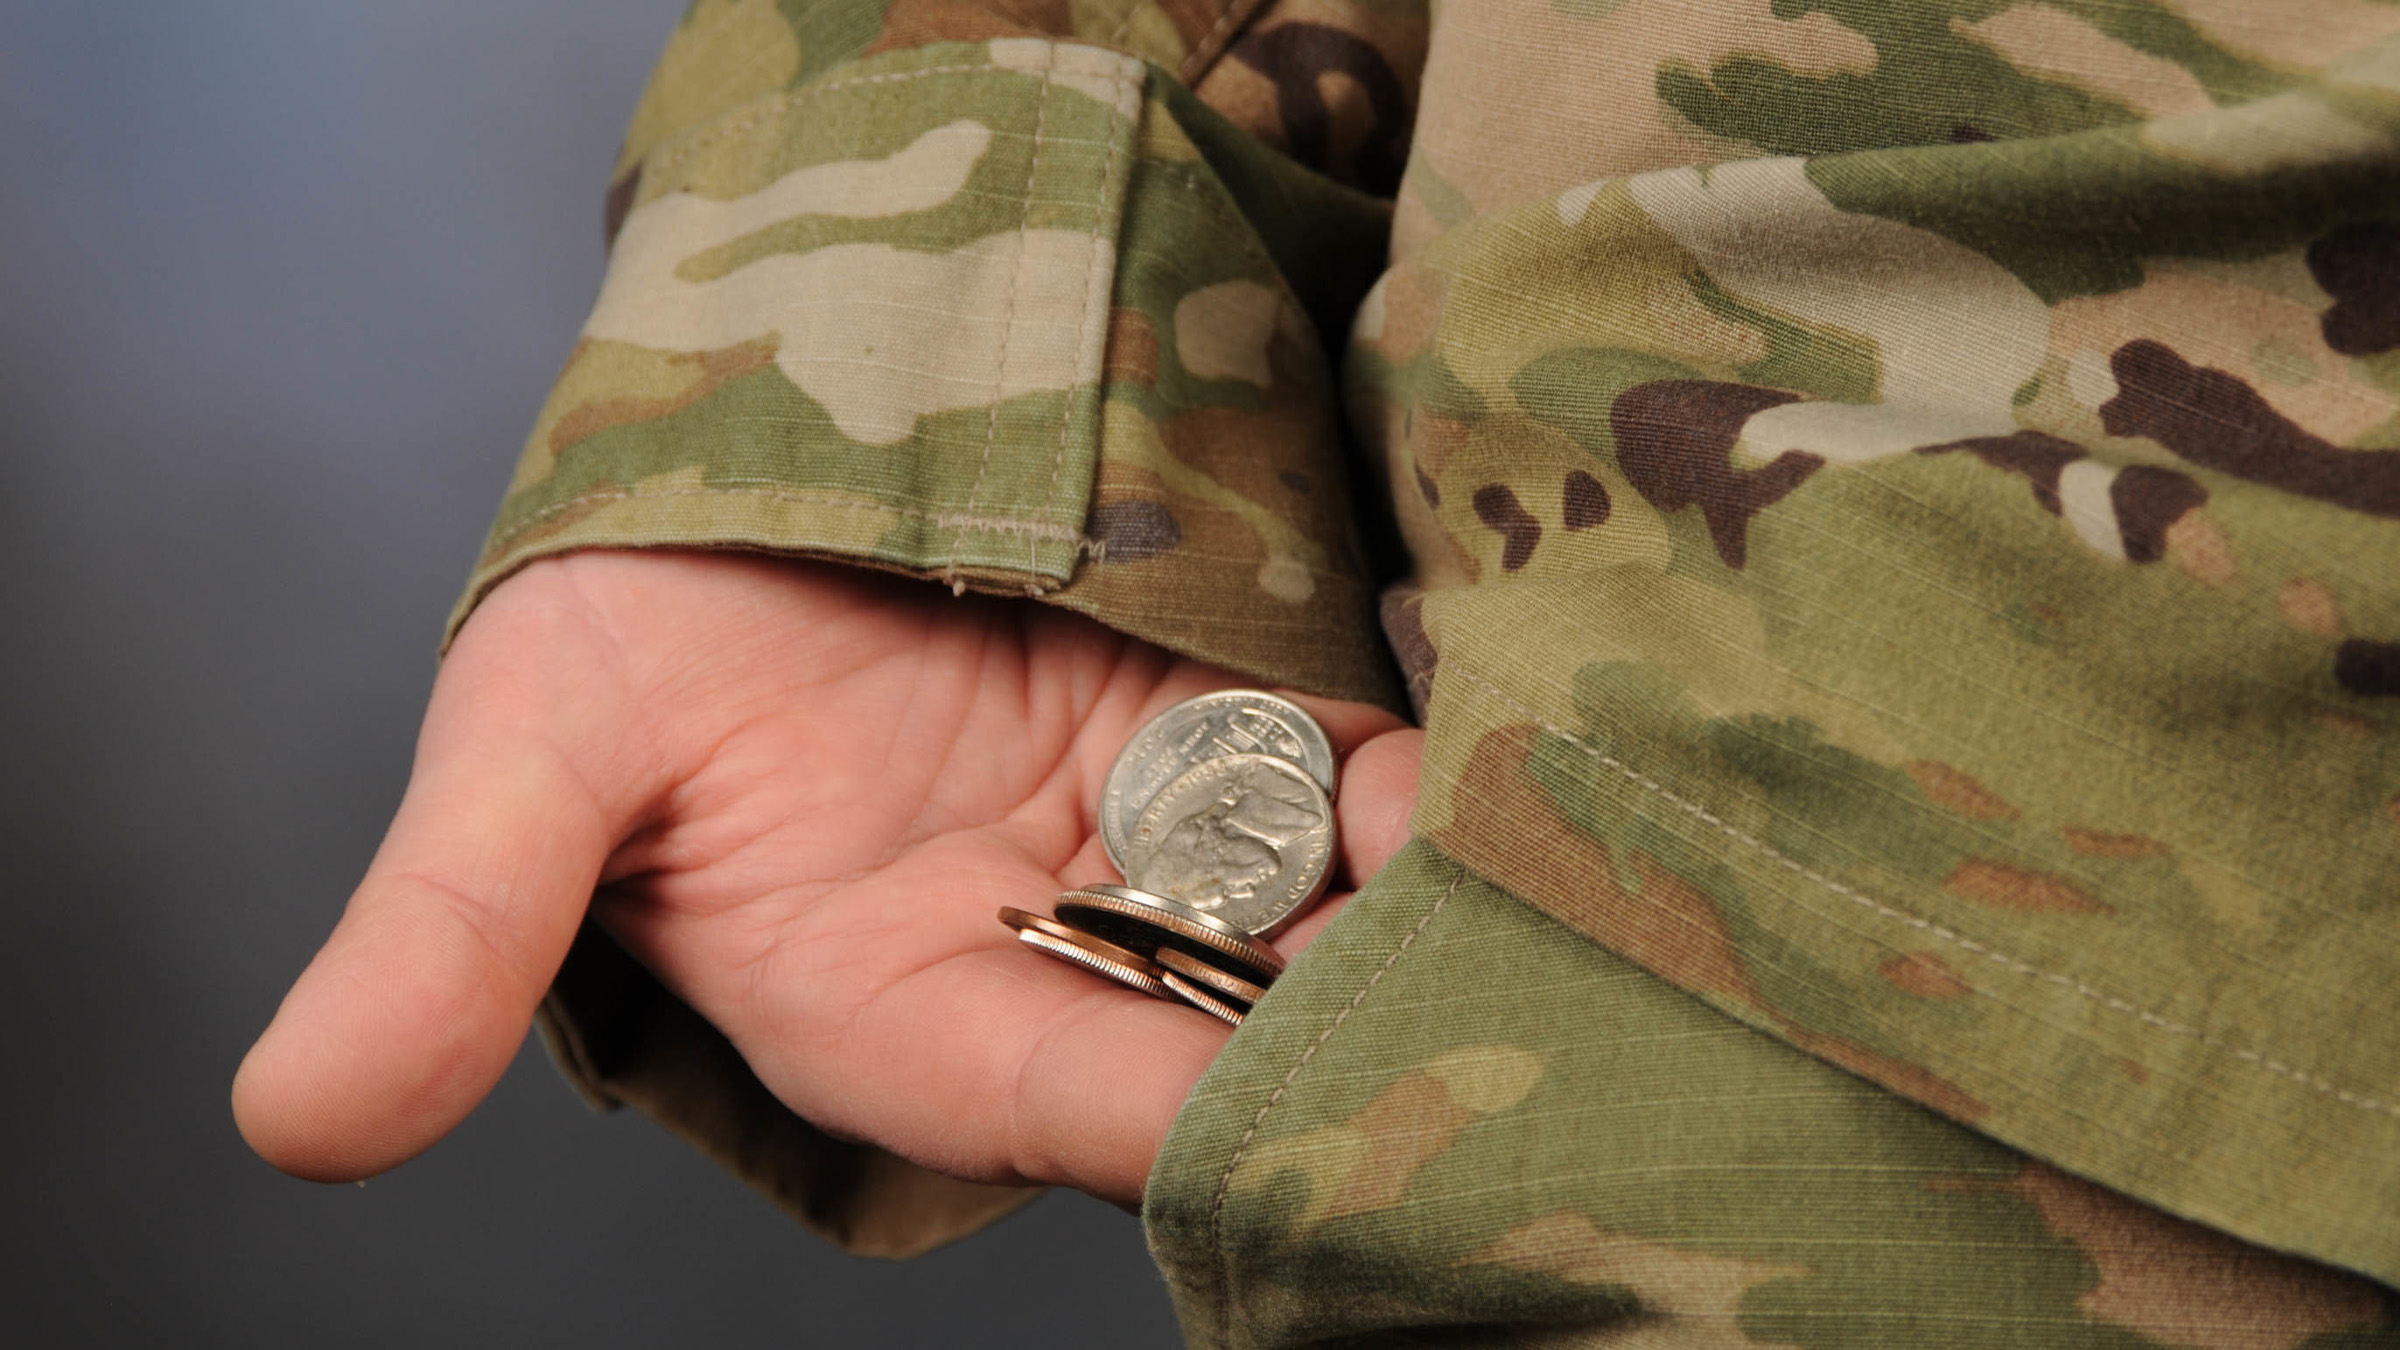 A servicemember counting out cash.